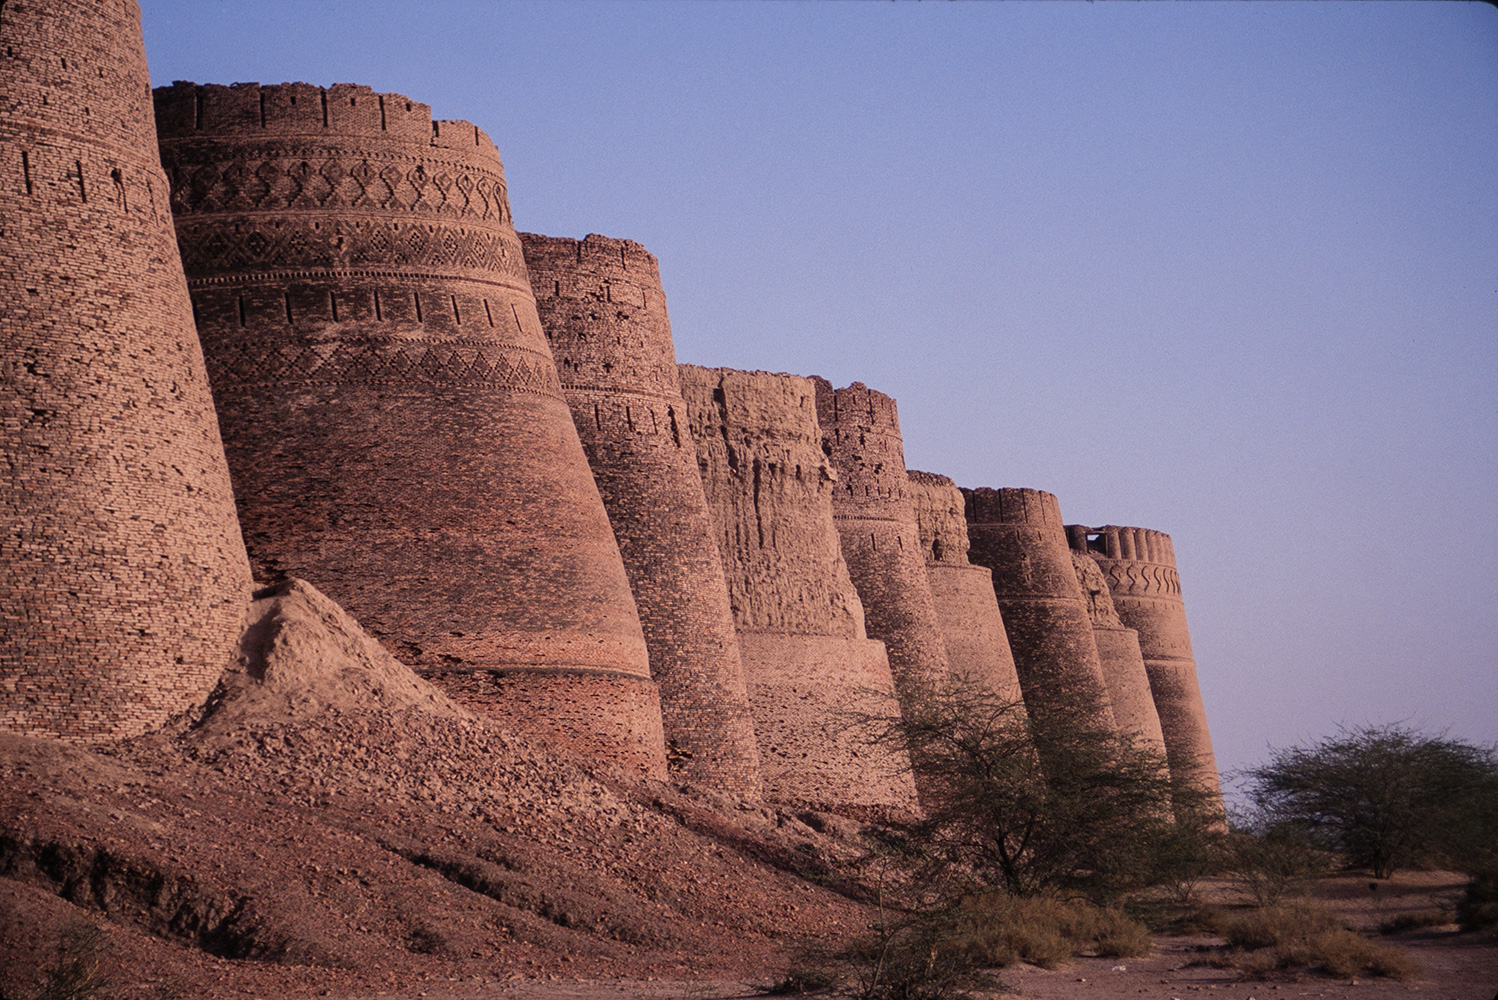 Close to Bahawalpur on the edge of the Cholistan desert, there has been a fort here for 5000 years as it is on the ancient trade route from Central Asia to India. The towers are 40 meters (130 feet) high and there are ten on each of the four sides. The whole is over a mile in circumference. The site was captured by the Abassi family from Raja Rawal Singh of Jaiselmer in 1733, and the present fort dates from that time. The area was once watered by the Ghaggar (Hakra) river, which was known in ancient times as the Sarasvati, along the 300 mile length of which are numerous arcaeological sites dating from the Indus Civilzation. In the 18th century some 12,000 people lived in the town below the walls of this fort.